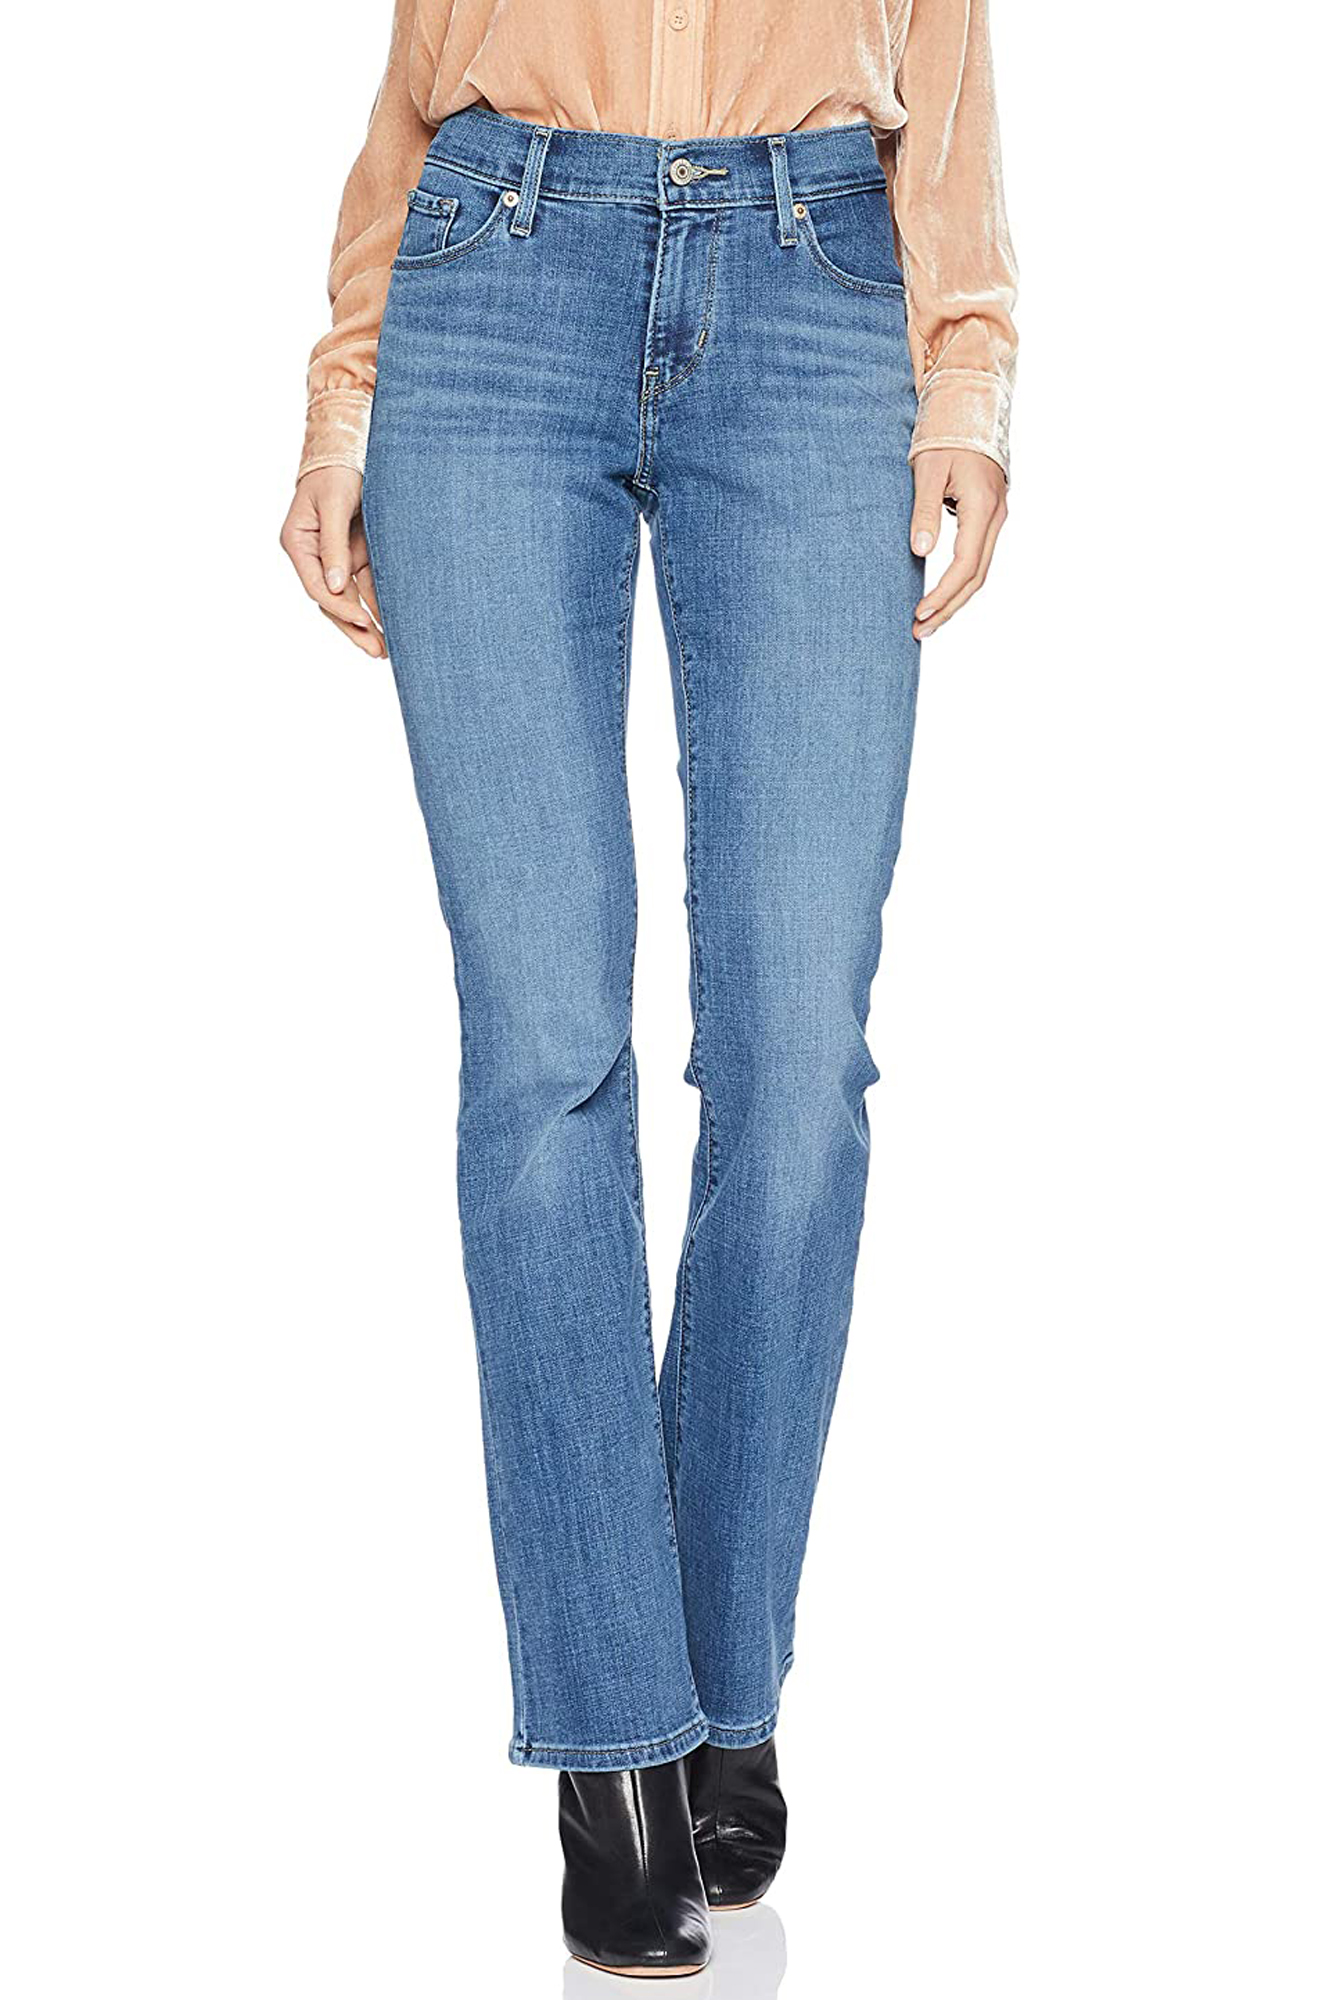 Jeans Shopping